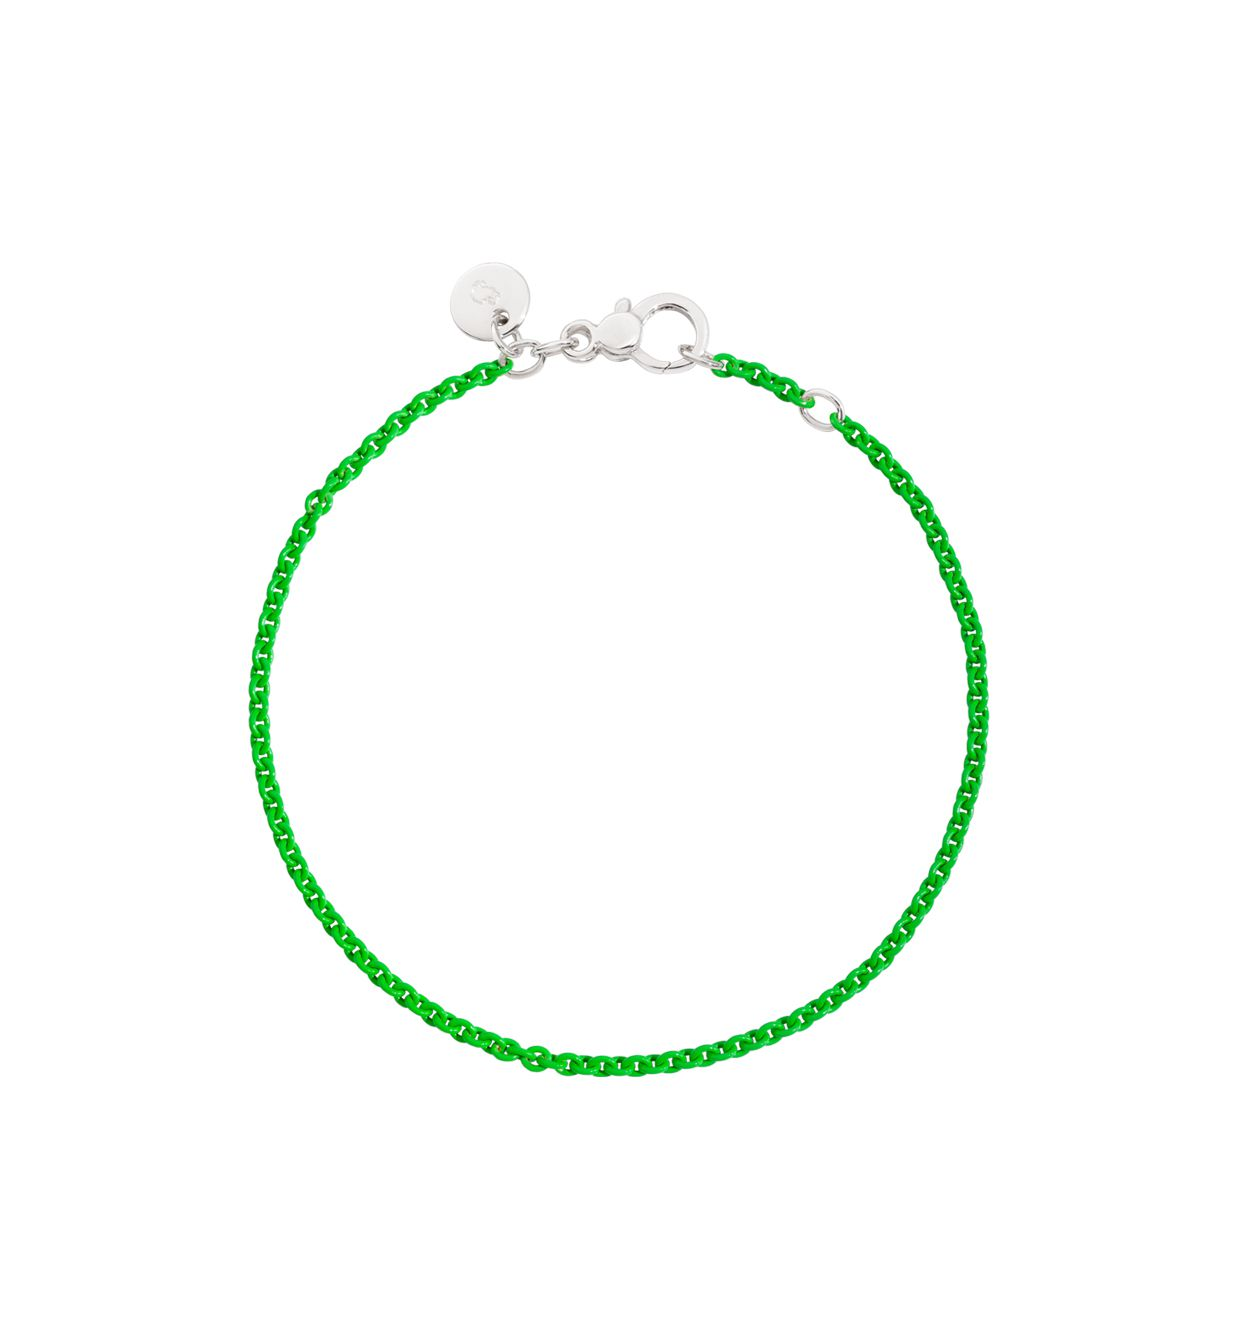 DoDo Chain Bracelet in Green Lacquered Silver - Orsini Jewellers NZ